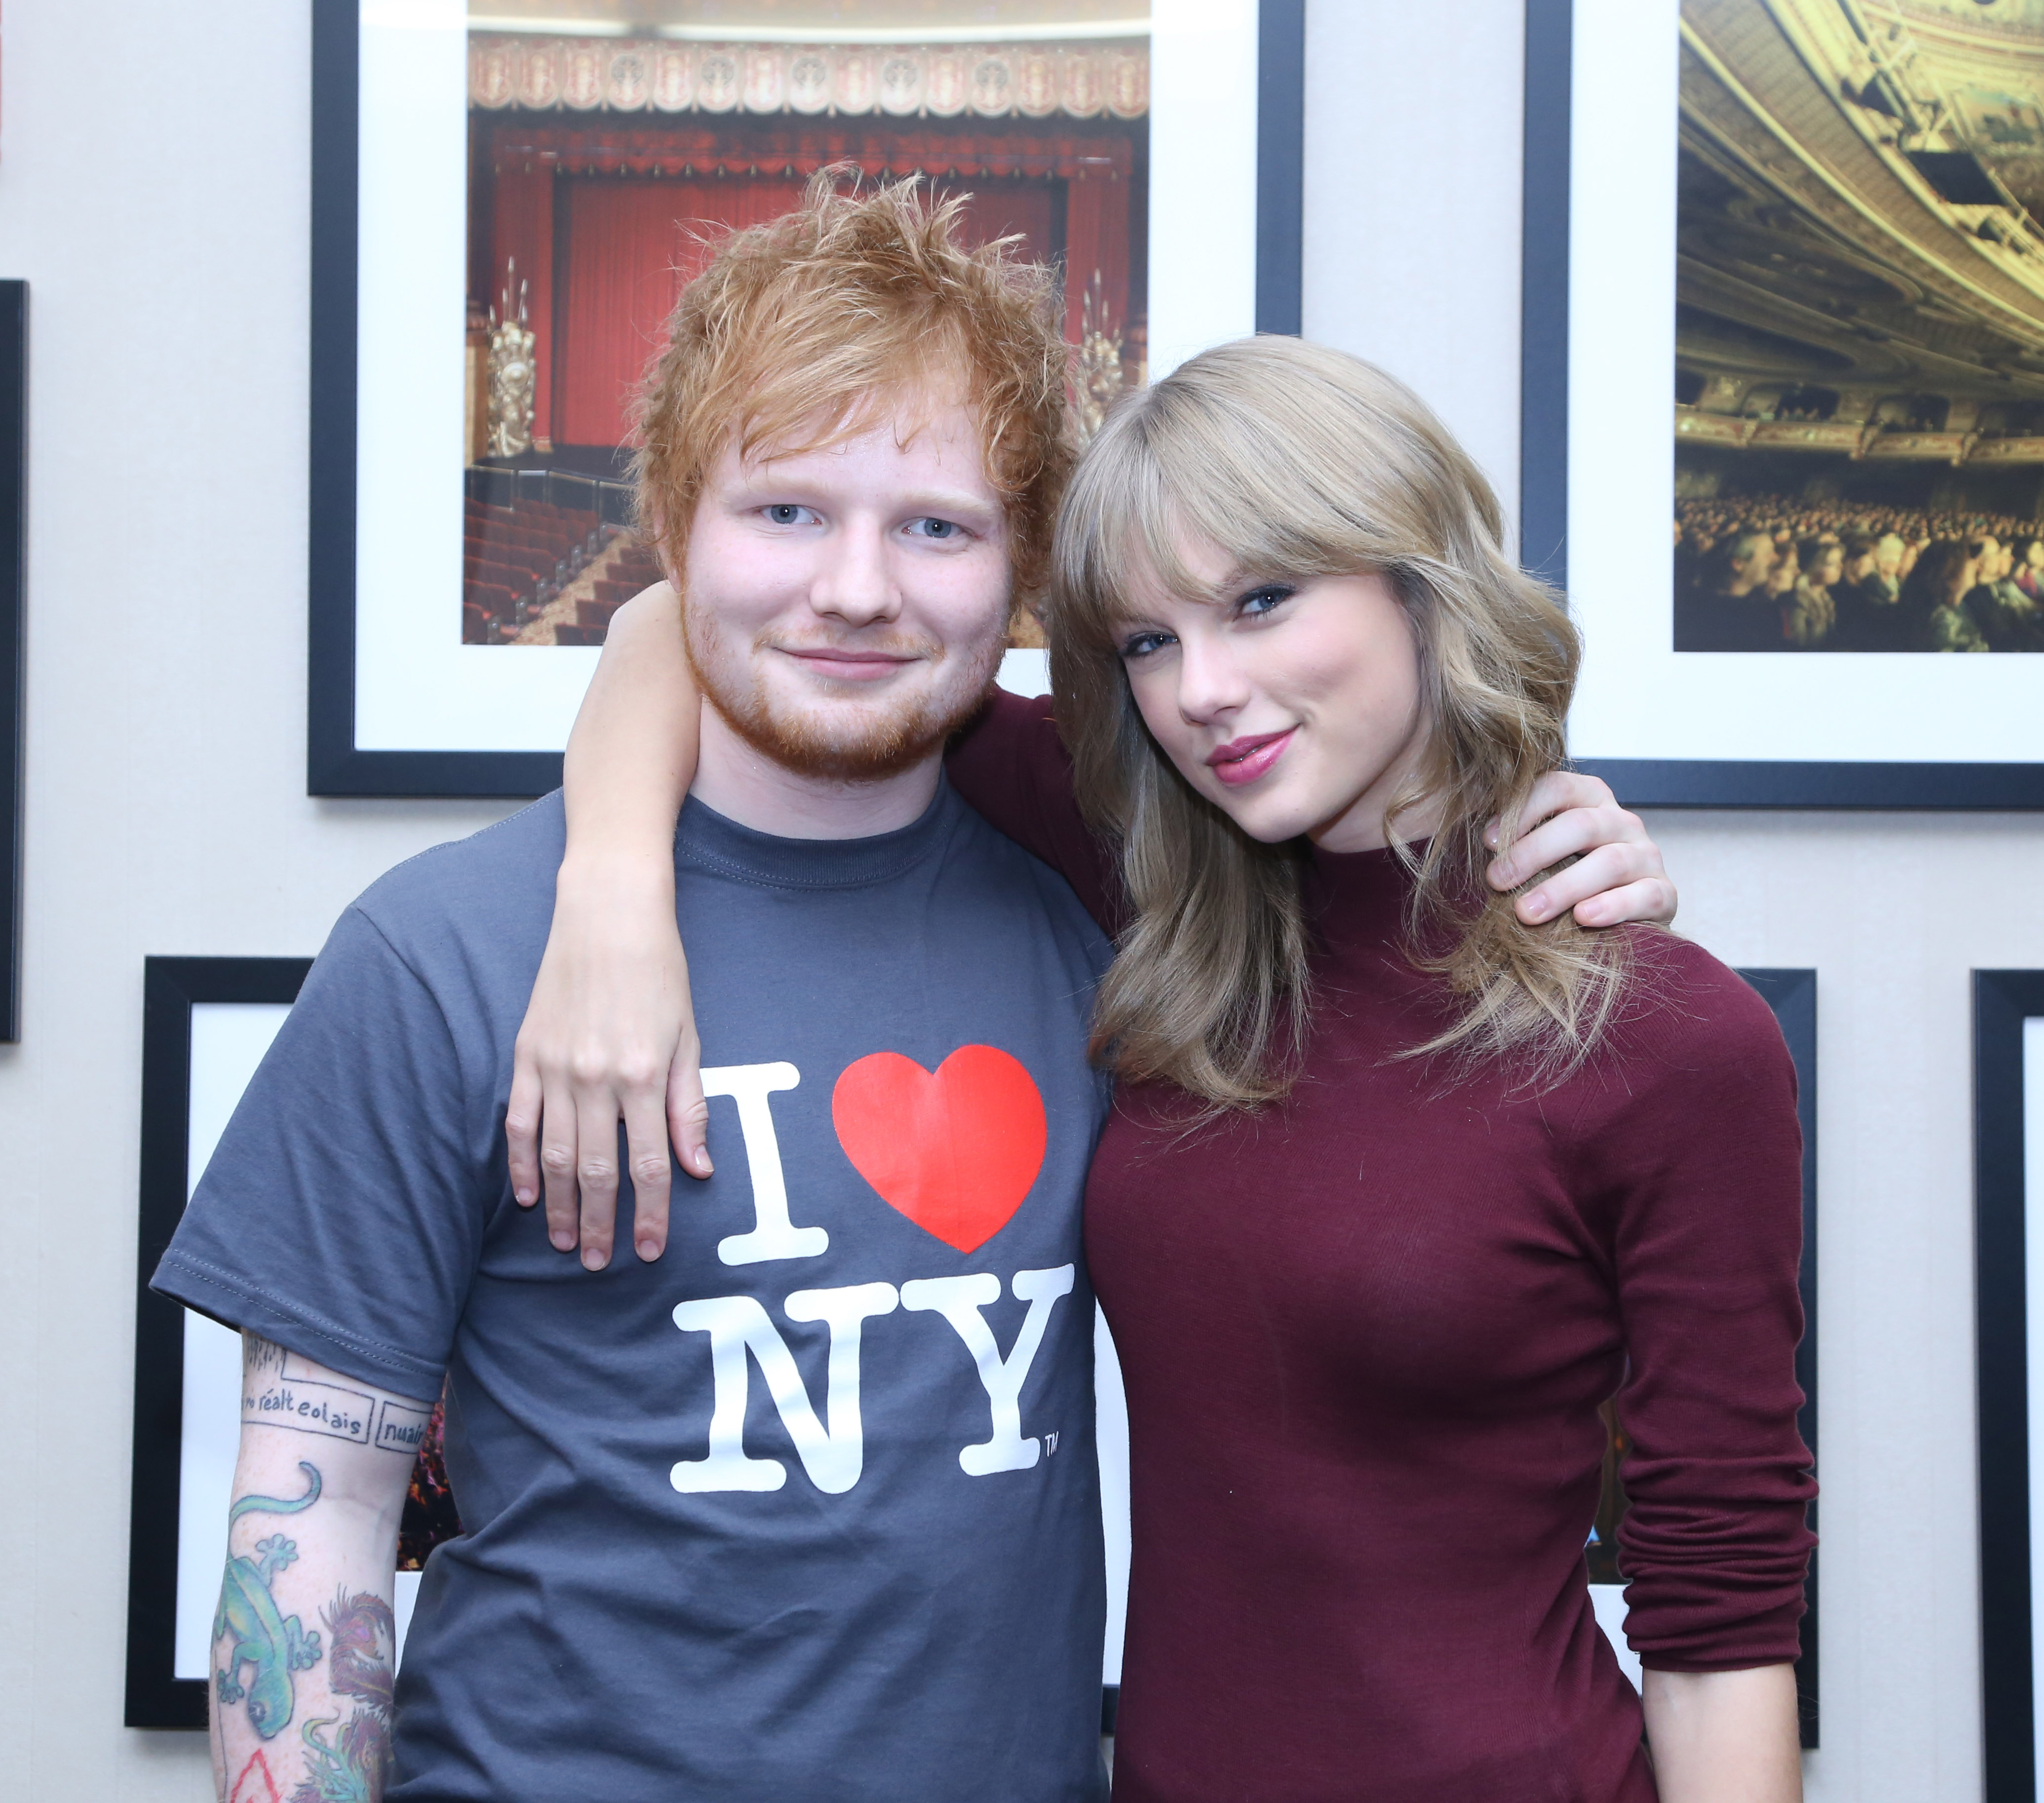 Ed Sheeran poses with Taylor Swift backstage before his sold-out show at Madison Square Garden Arena on November 1, 2013 in New York City.